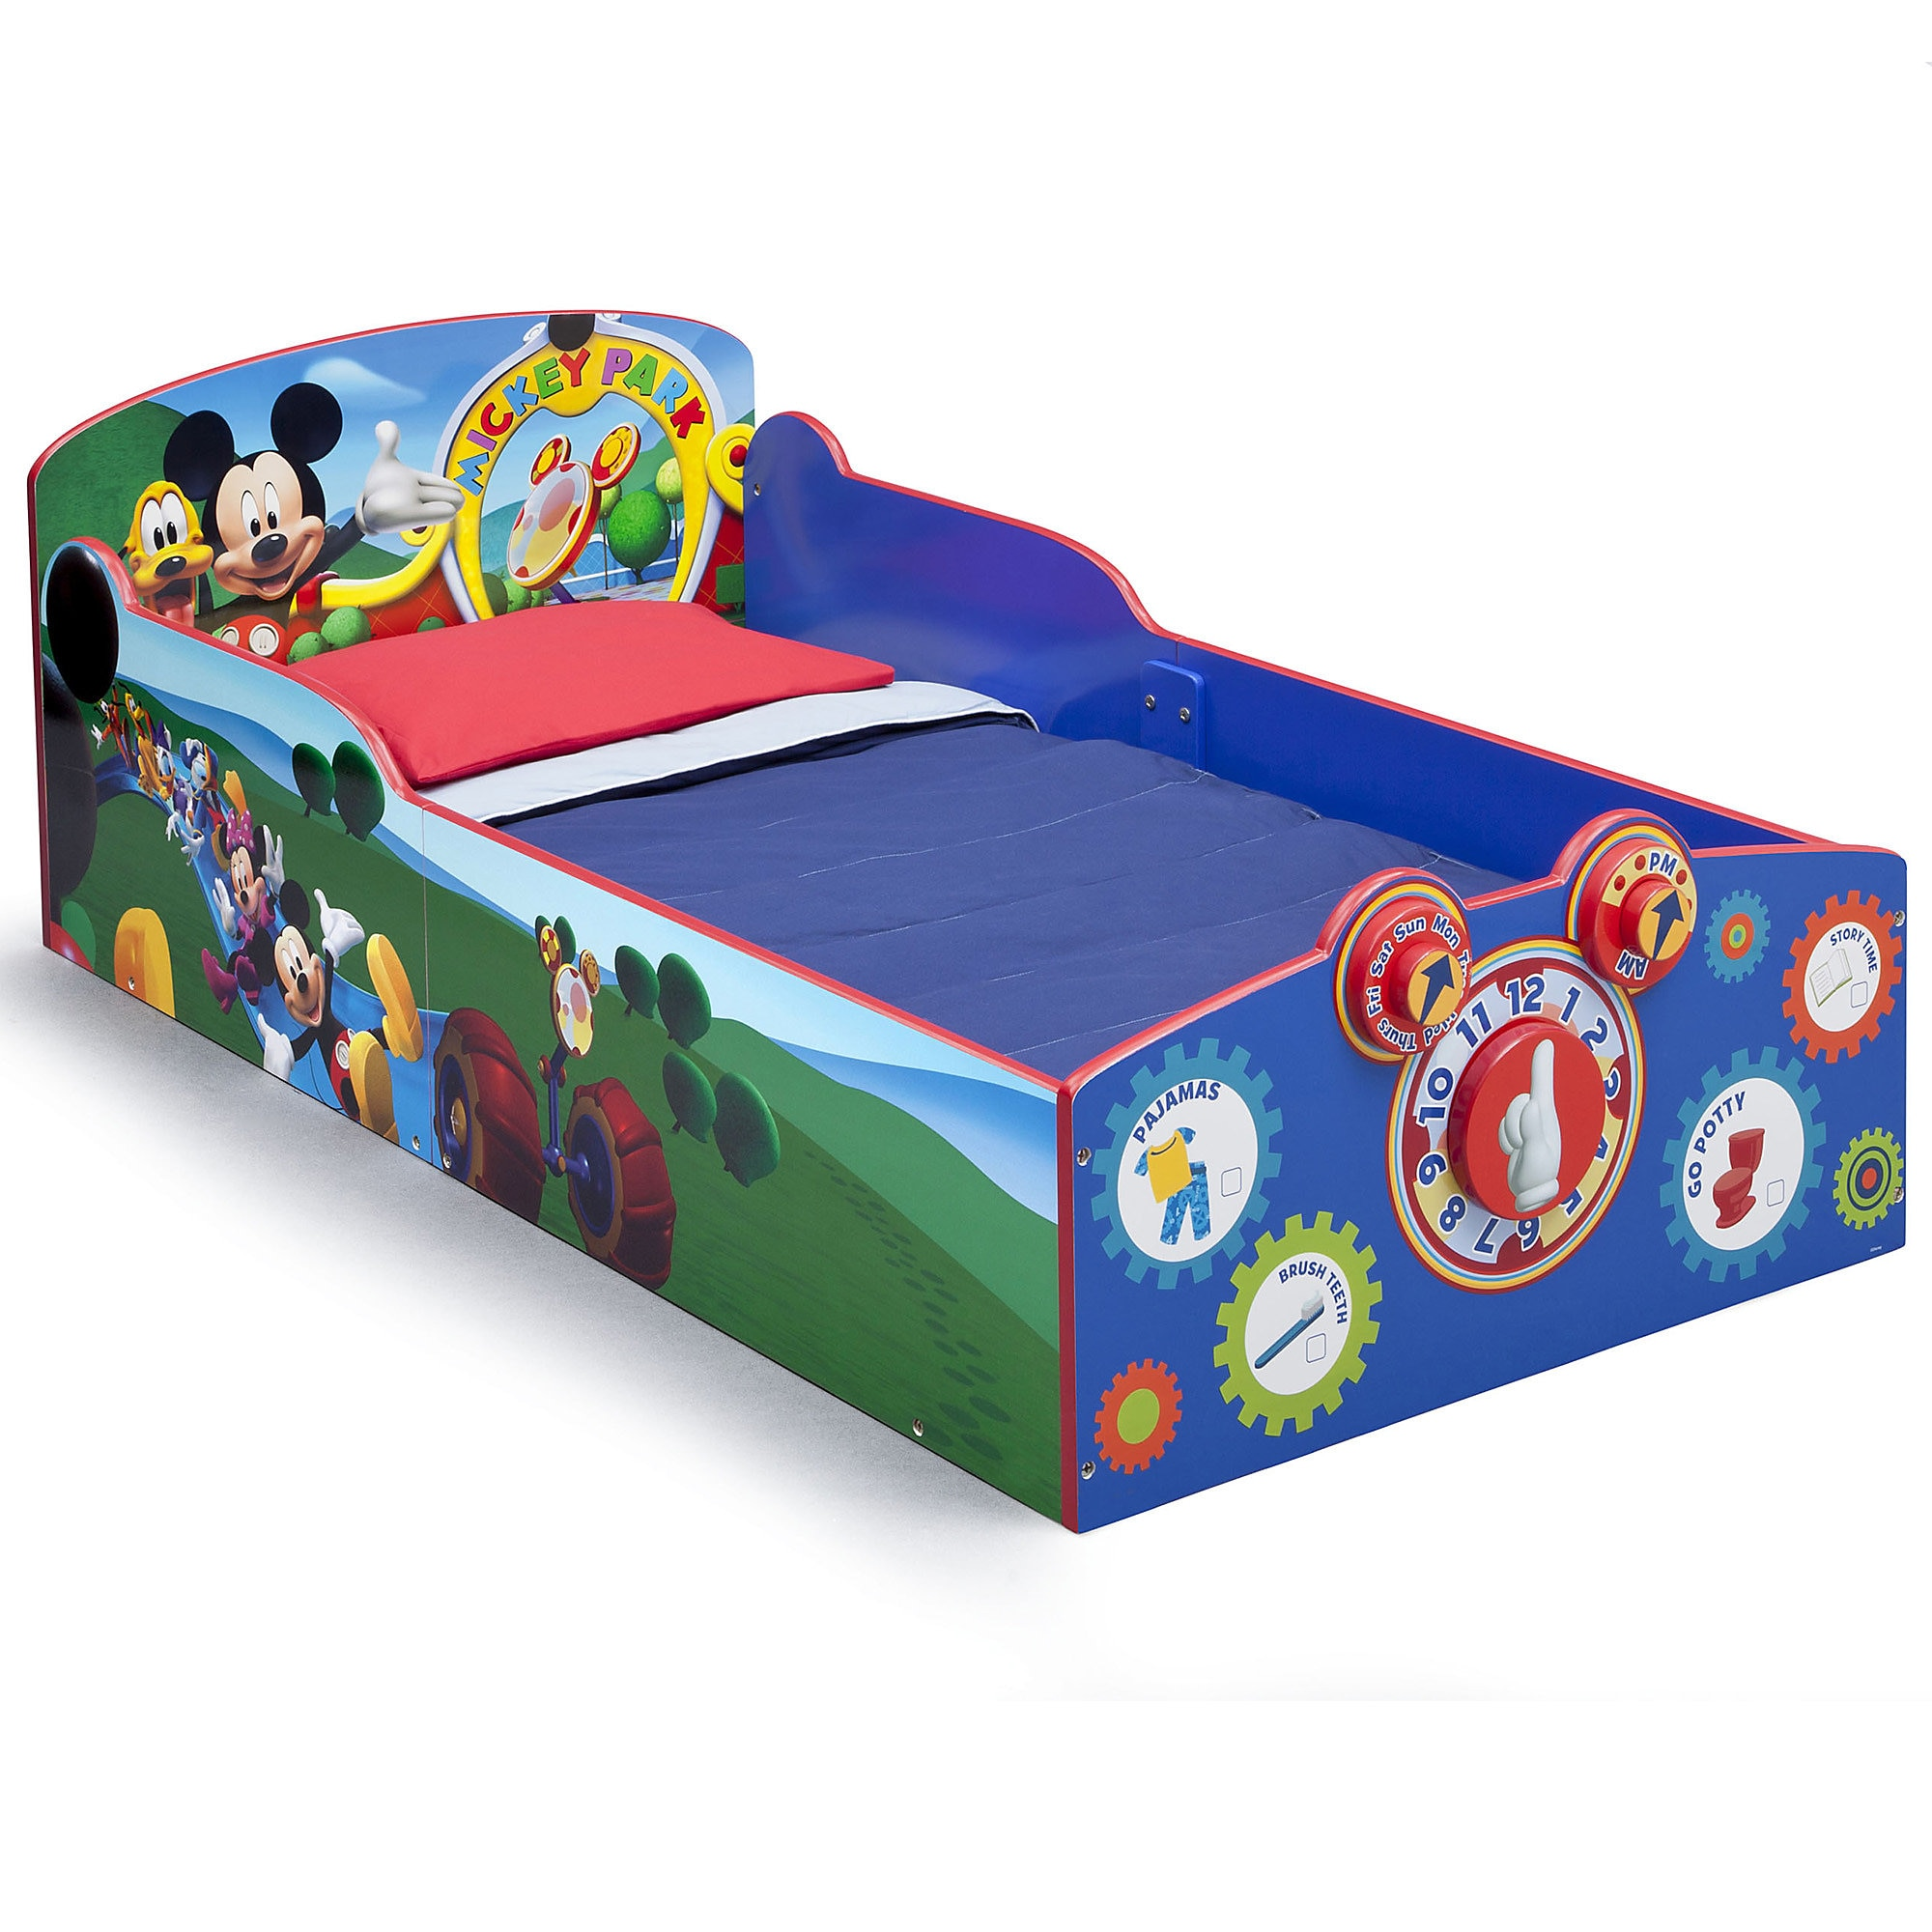 Ordinaire Product Image Of Mickey Mouse Interactive Wooden Toddler Bed # 1